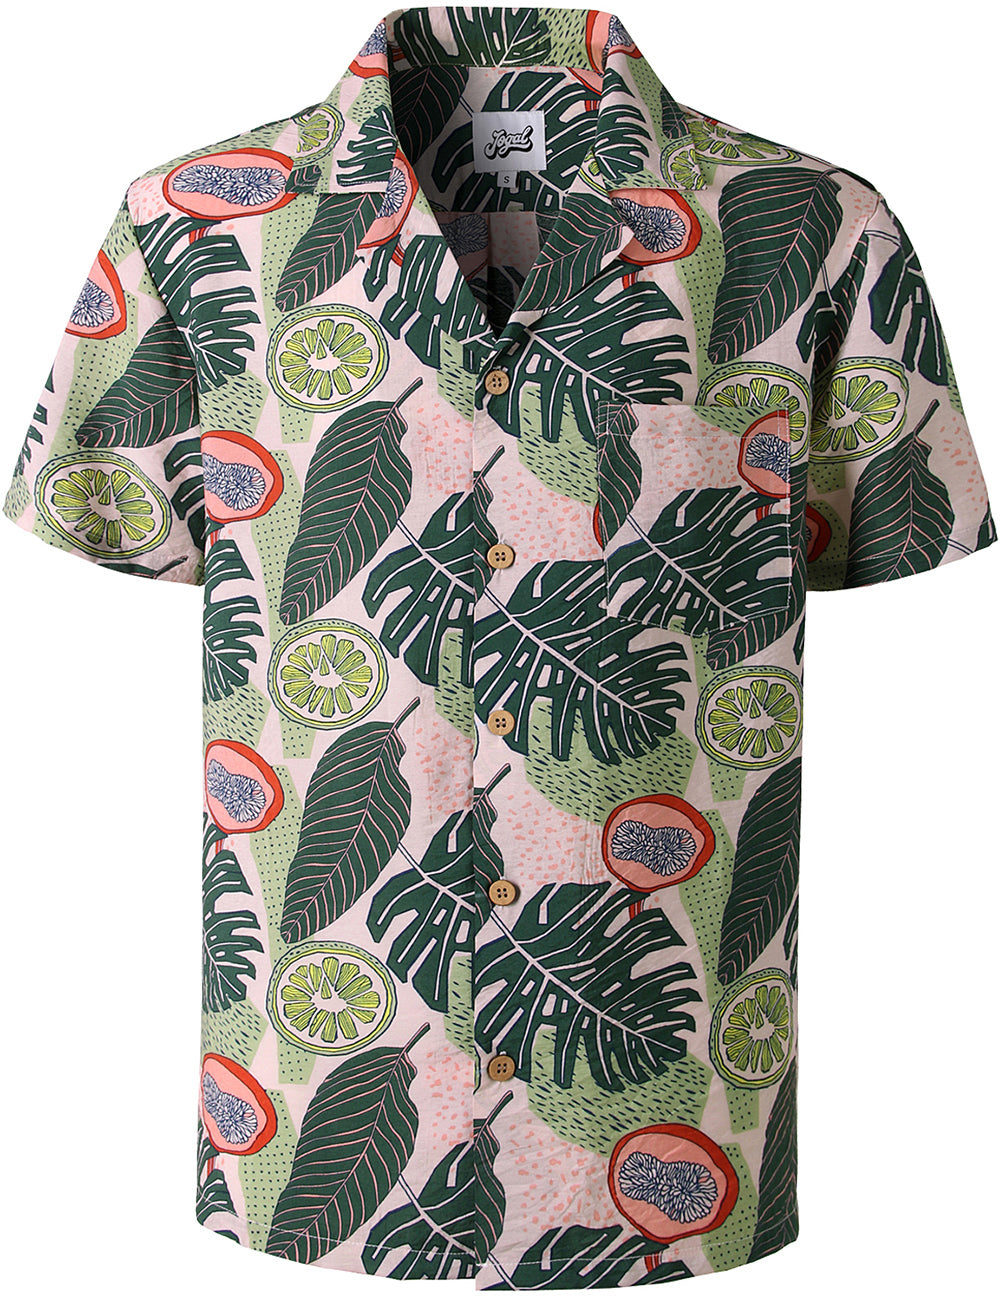 JOGAL Men's Relaxed-Fit Cotton Tropical Hawaiian Shirt(Green Lemon)